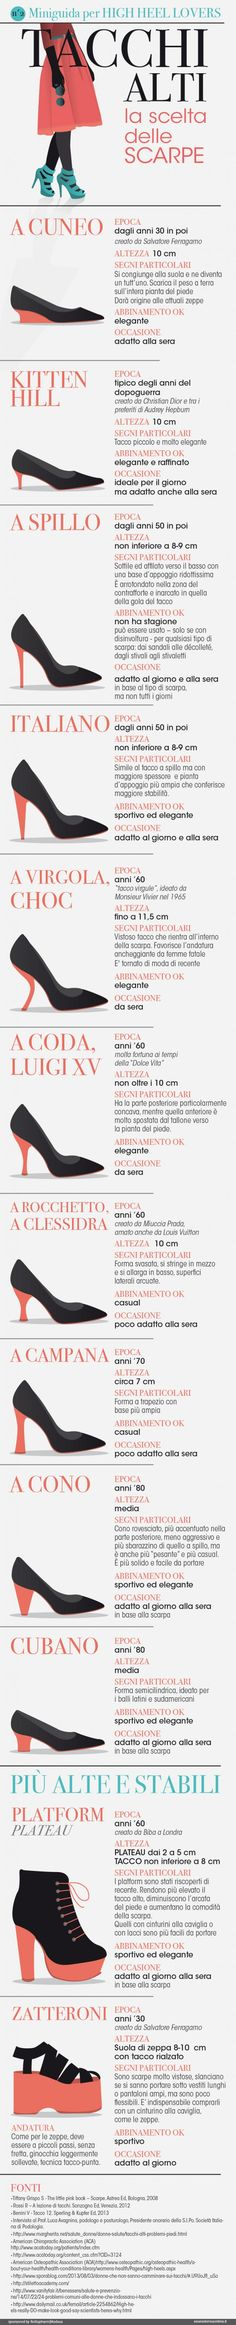 Miniguida per High Heels Lovers: la scelta delle scarpe - infographics designed for esseredonnaonline.it- illustrated by Alice Kle Borghi, kleland.com